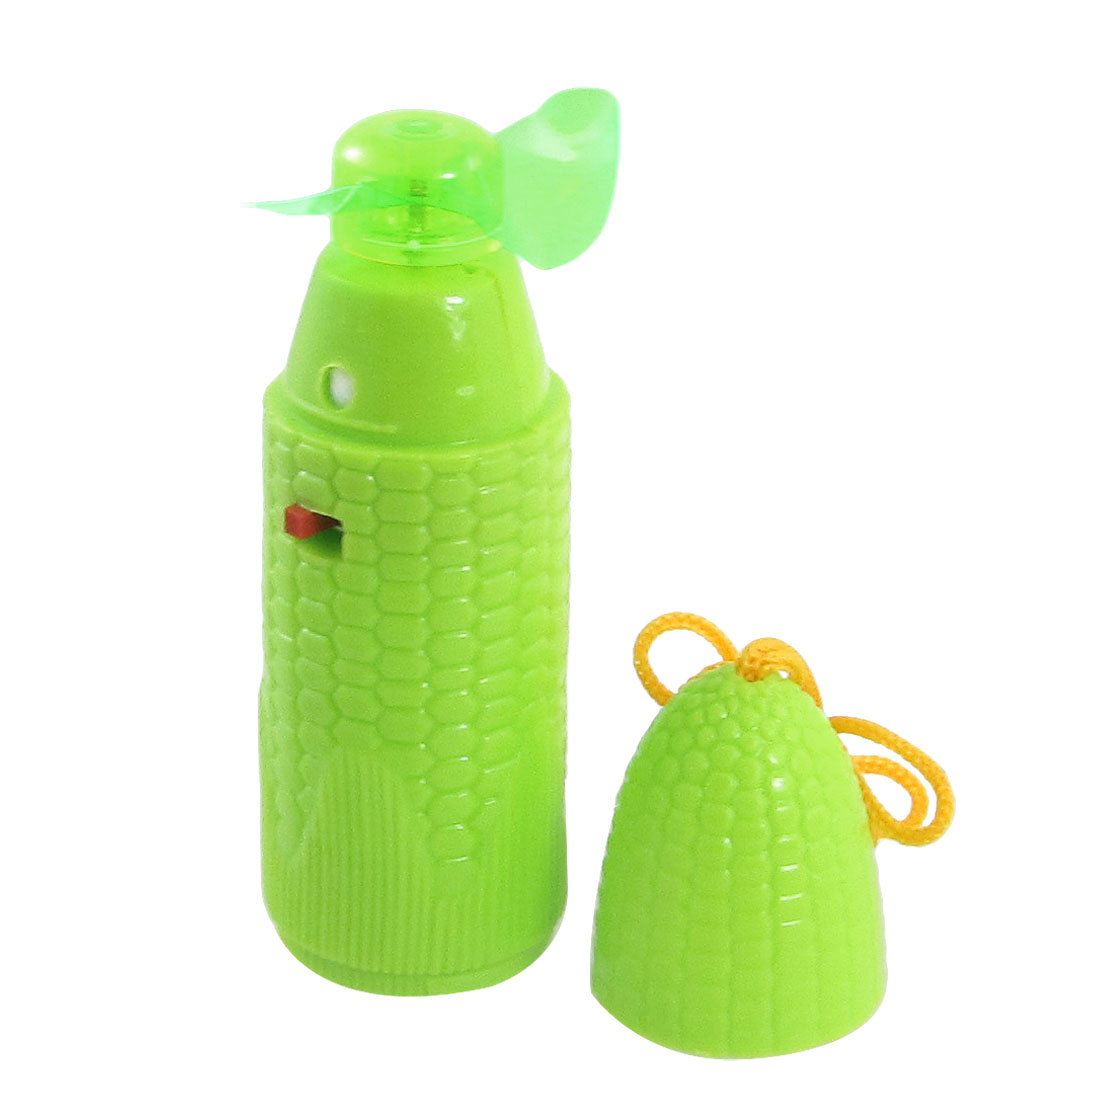 Portable Corn Shaped Battery Powered Mini Cooler Fan Green